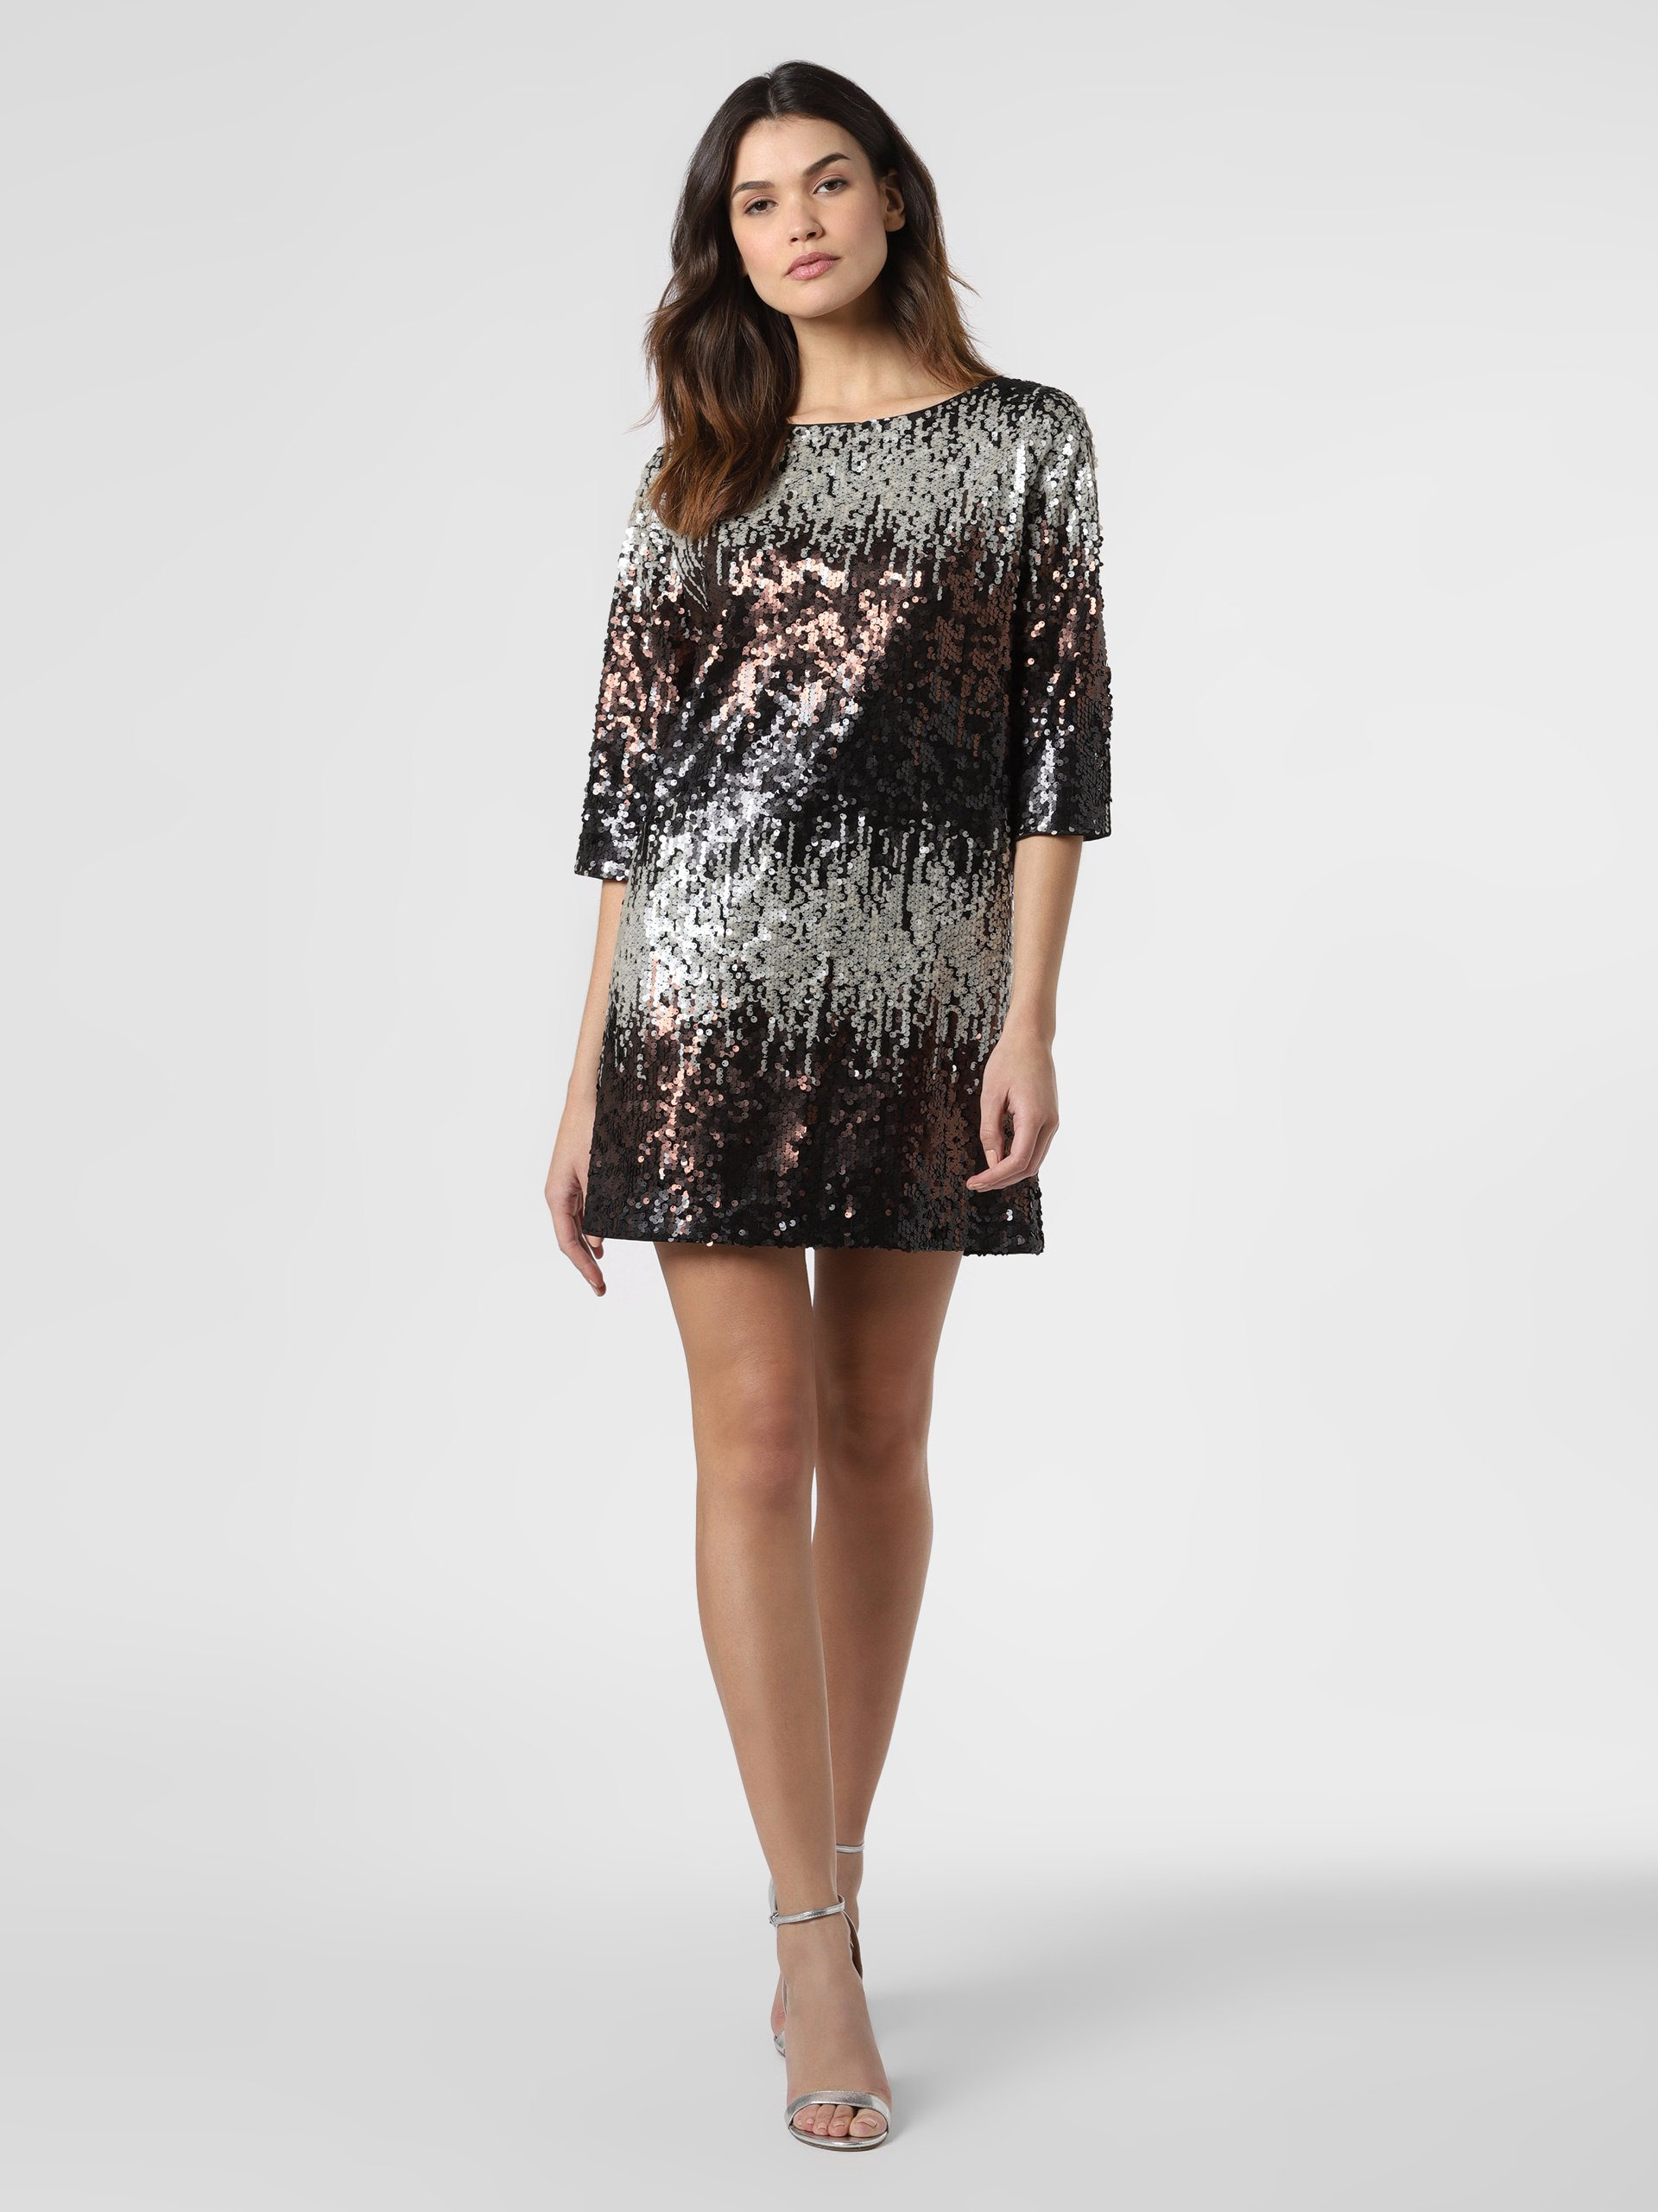 Sequin lined dress